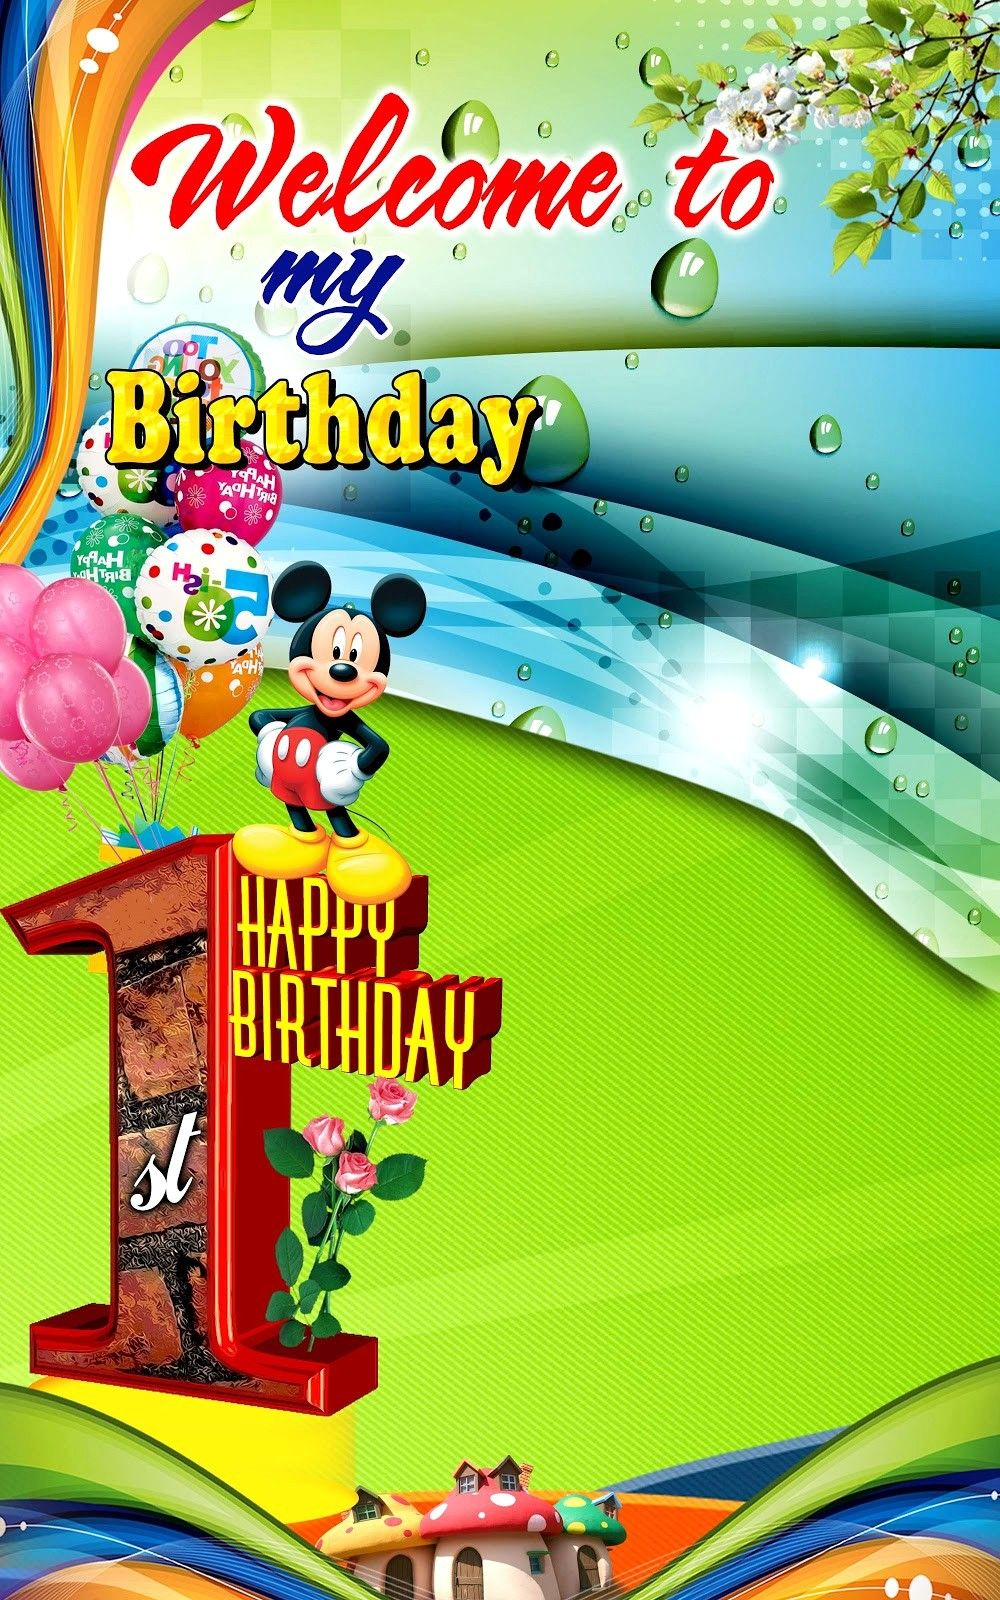 Birthday File2 12 Flex Design Templates For Birthday Flex Design Templates Birthday Banner Design Birthday Photo Banner Birthday Background Design